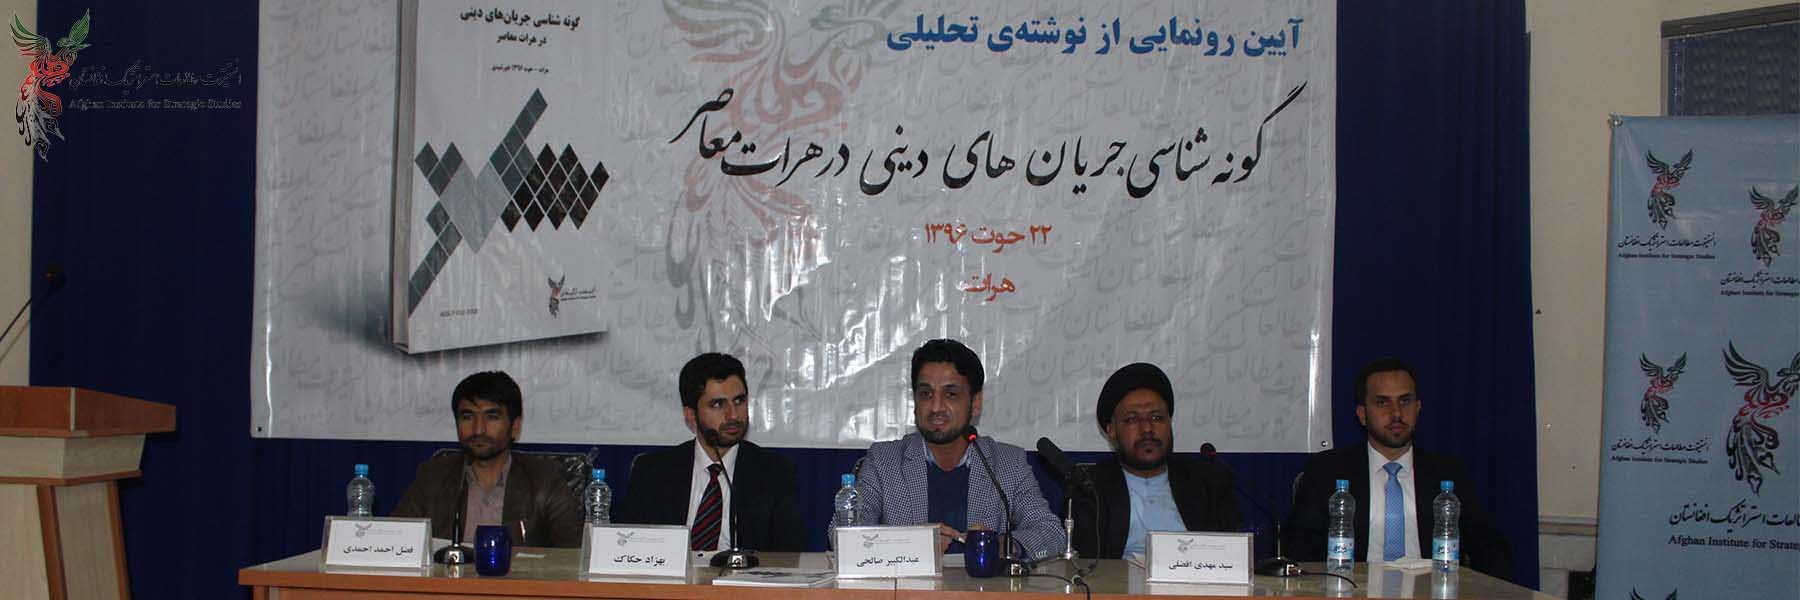 Launching Ceremony of AISS's Recent Research Paper